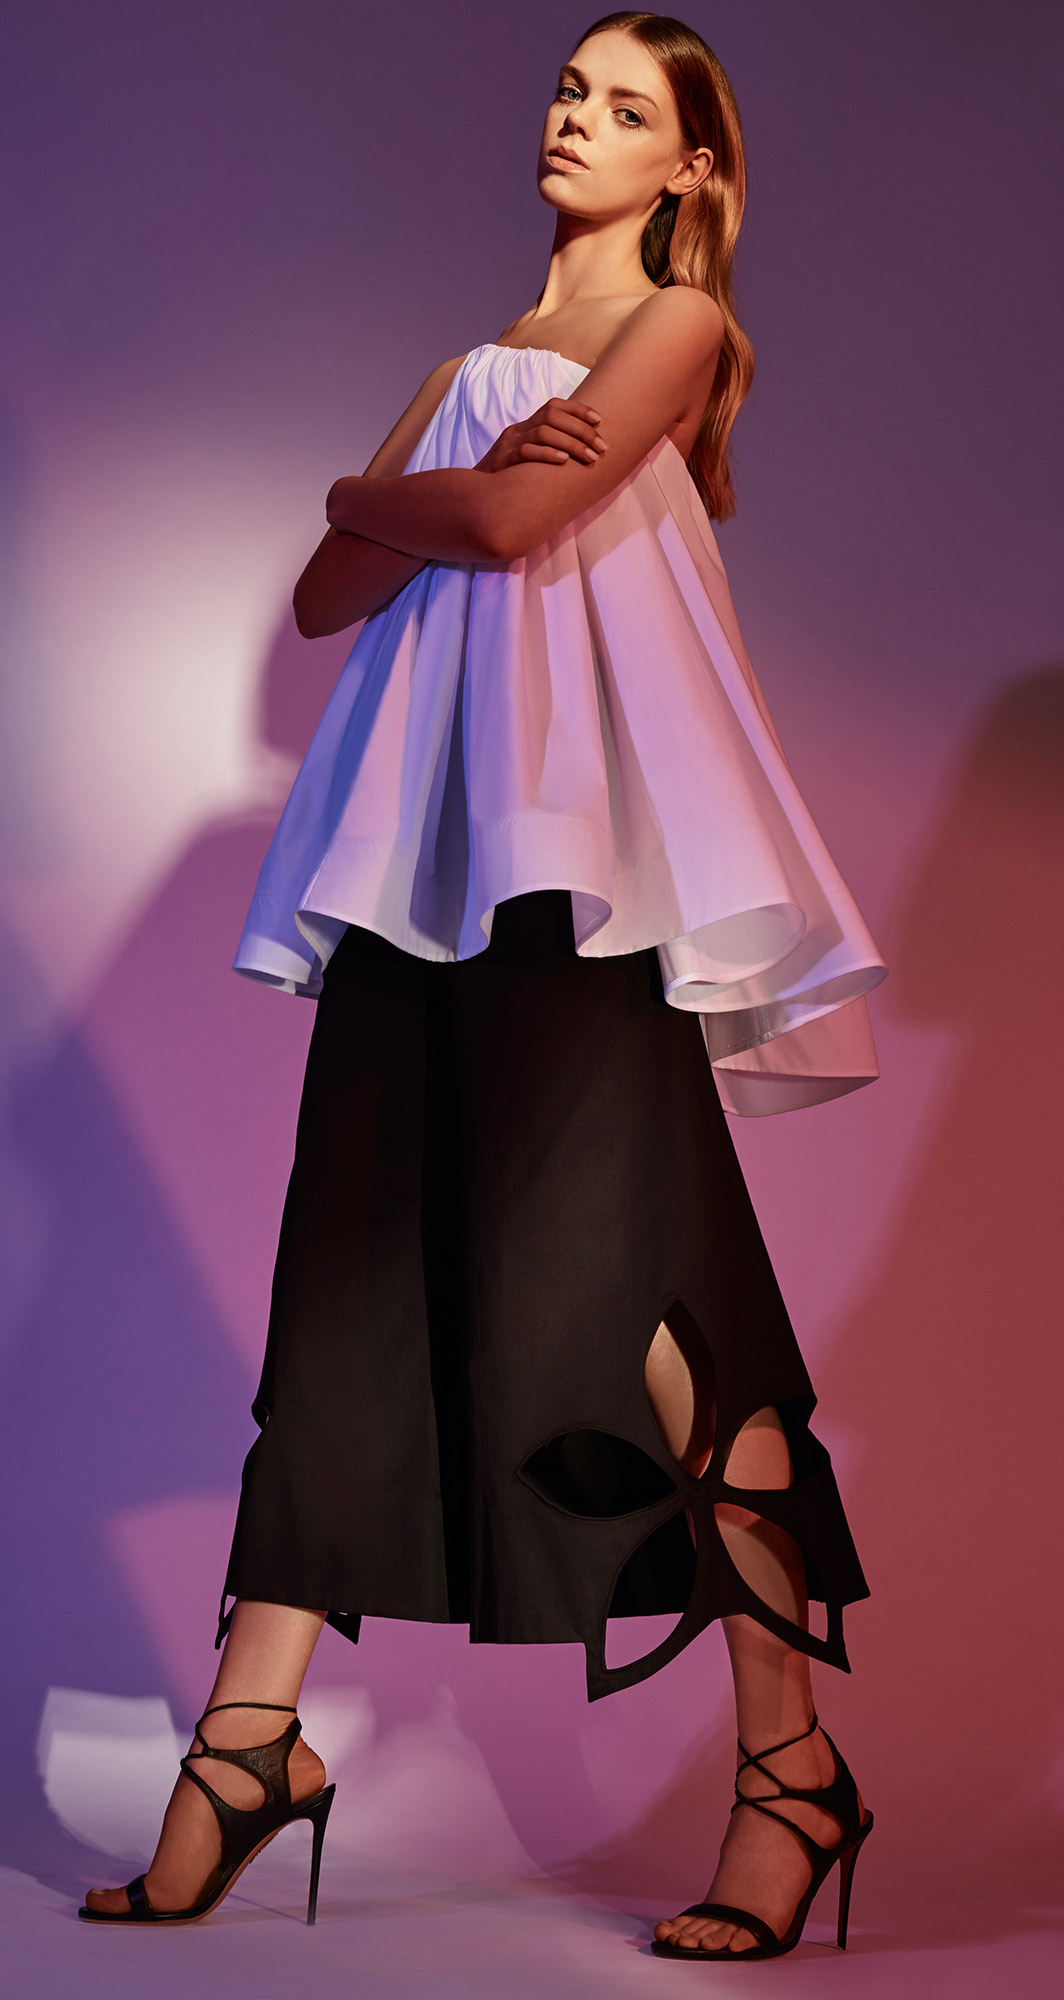 White maticevski top with black rosie assoulin flower cut-out pants